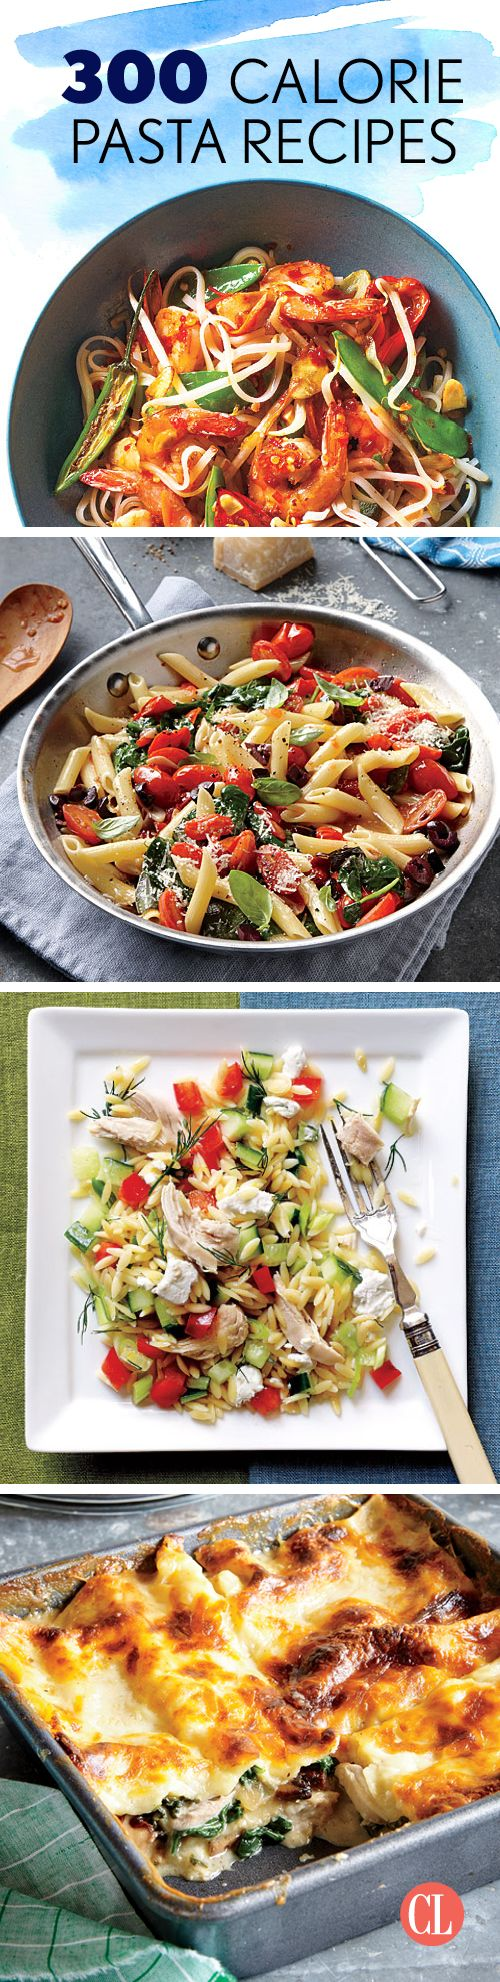 Even when cooking at home, pasta recipes can head toward calorie-heavy territory quite easily. Between the noodles, sauces, and any toppings you might sprinkle on, your plate could potentially tip the scale over 500 calories. These low-calorie pasta recipes help you portion control and keep your meal manageable. | Cooking Light